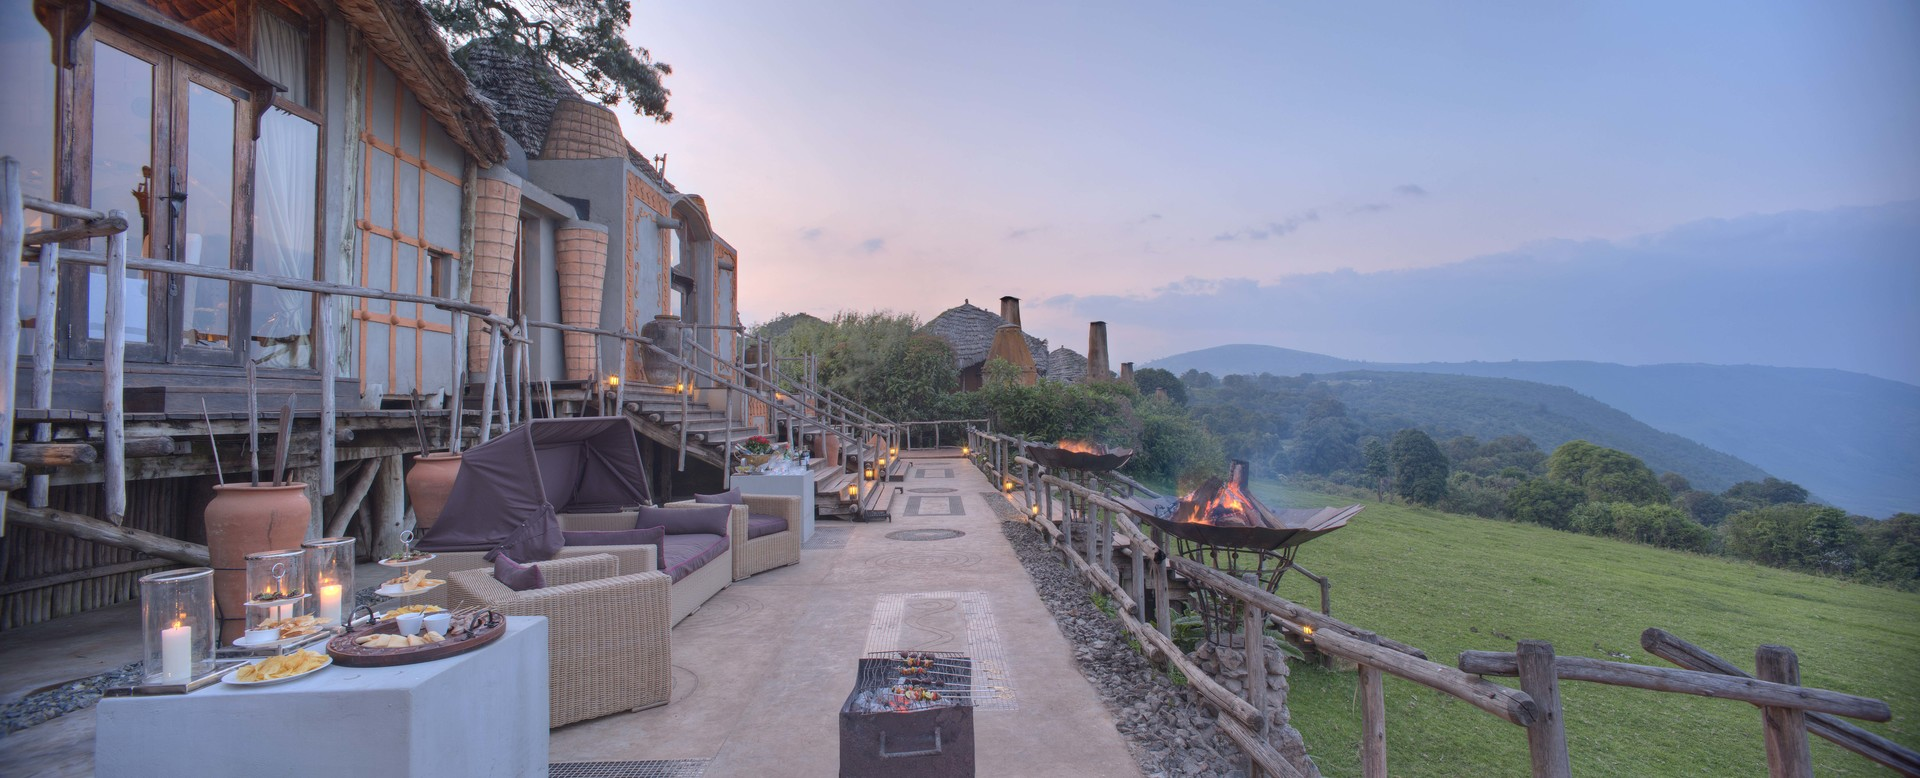 Ngorongoro_crater_lodge6.jpg